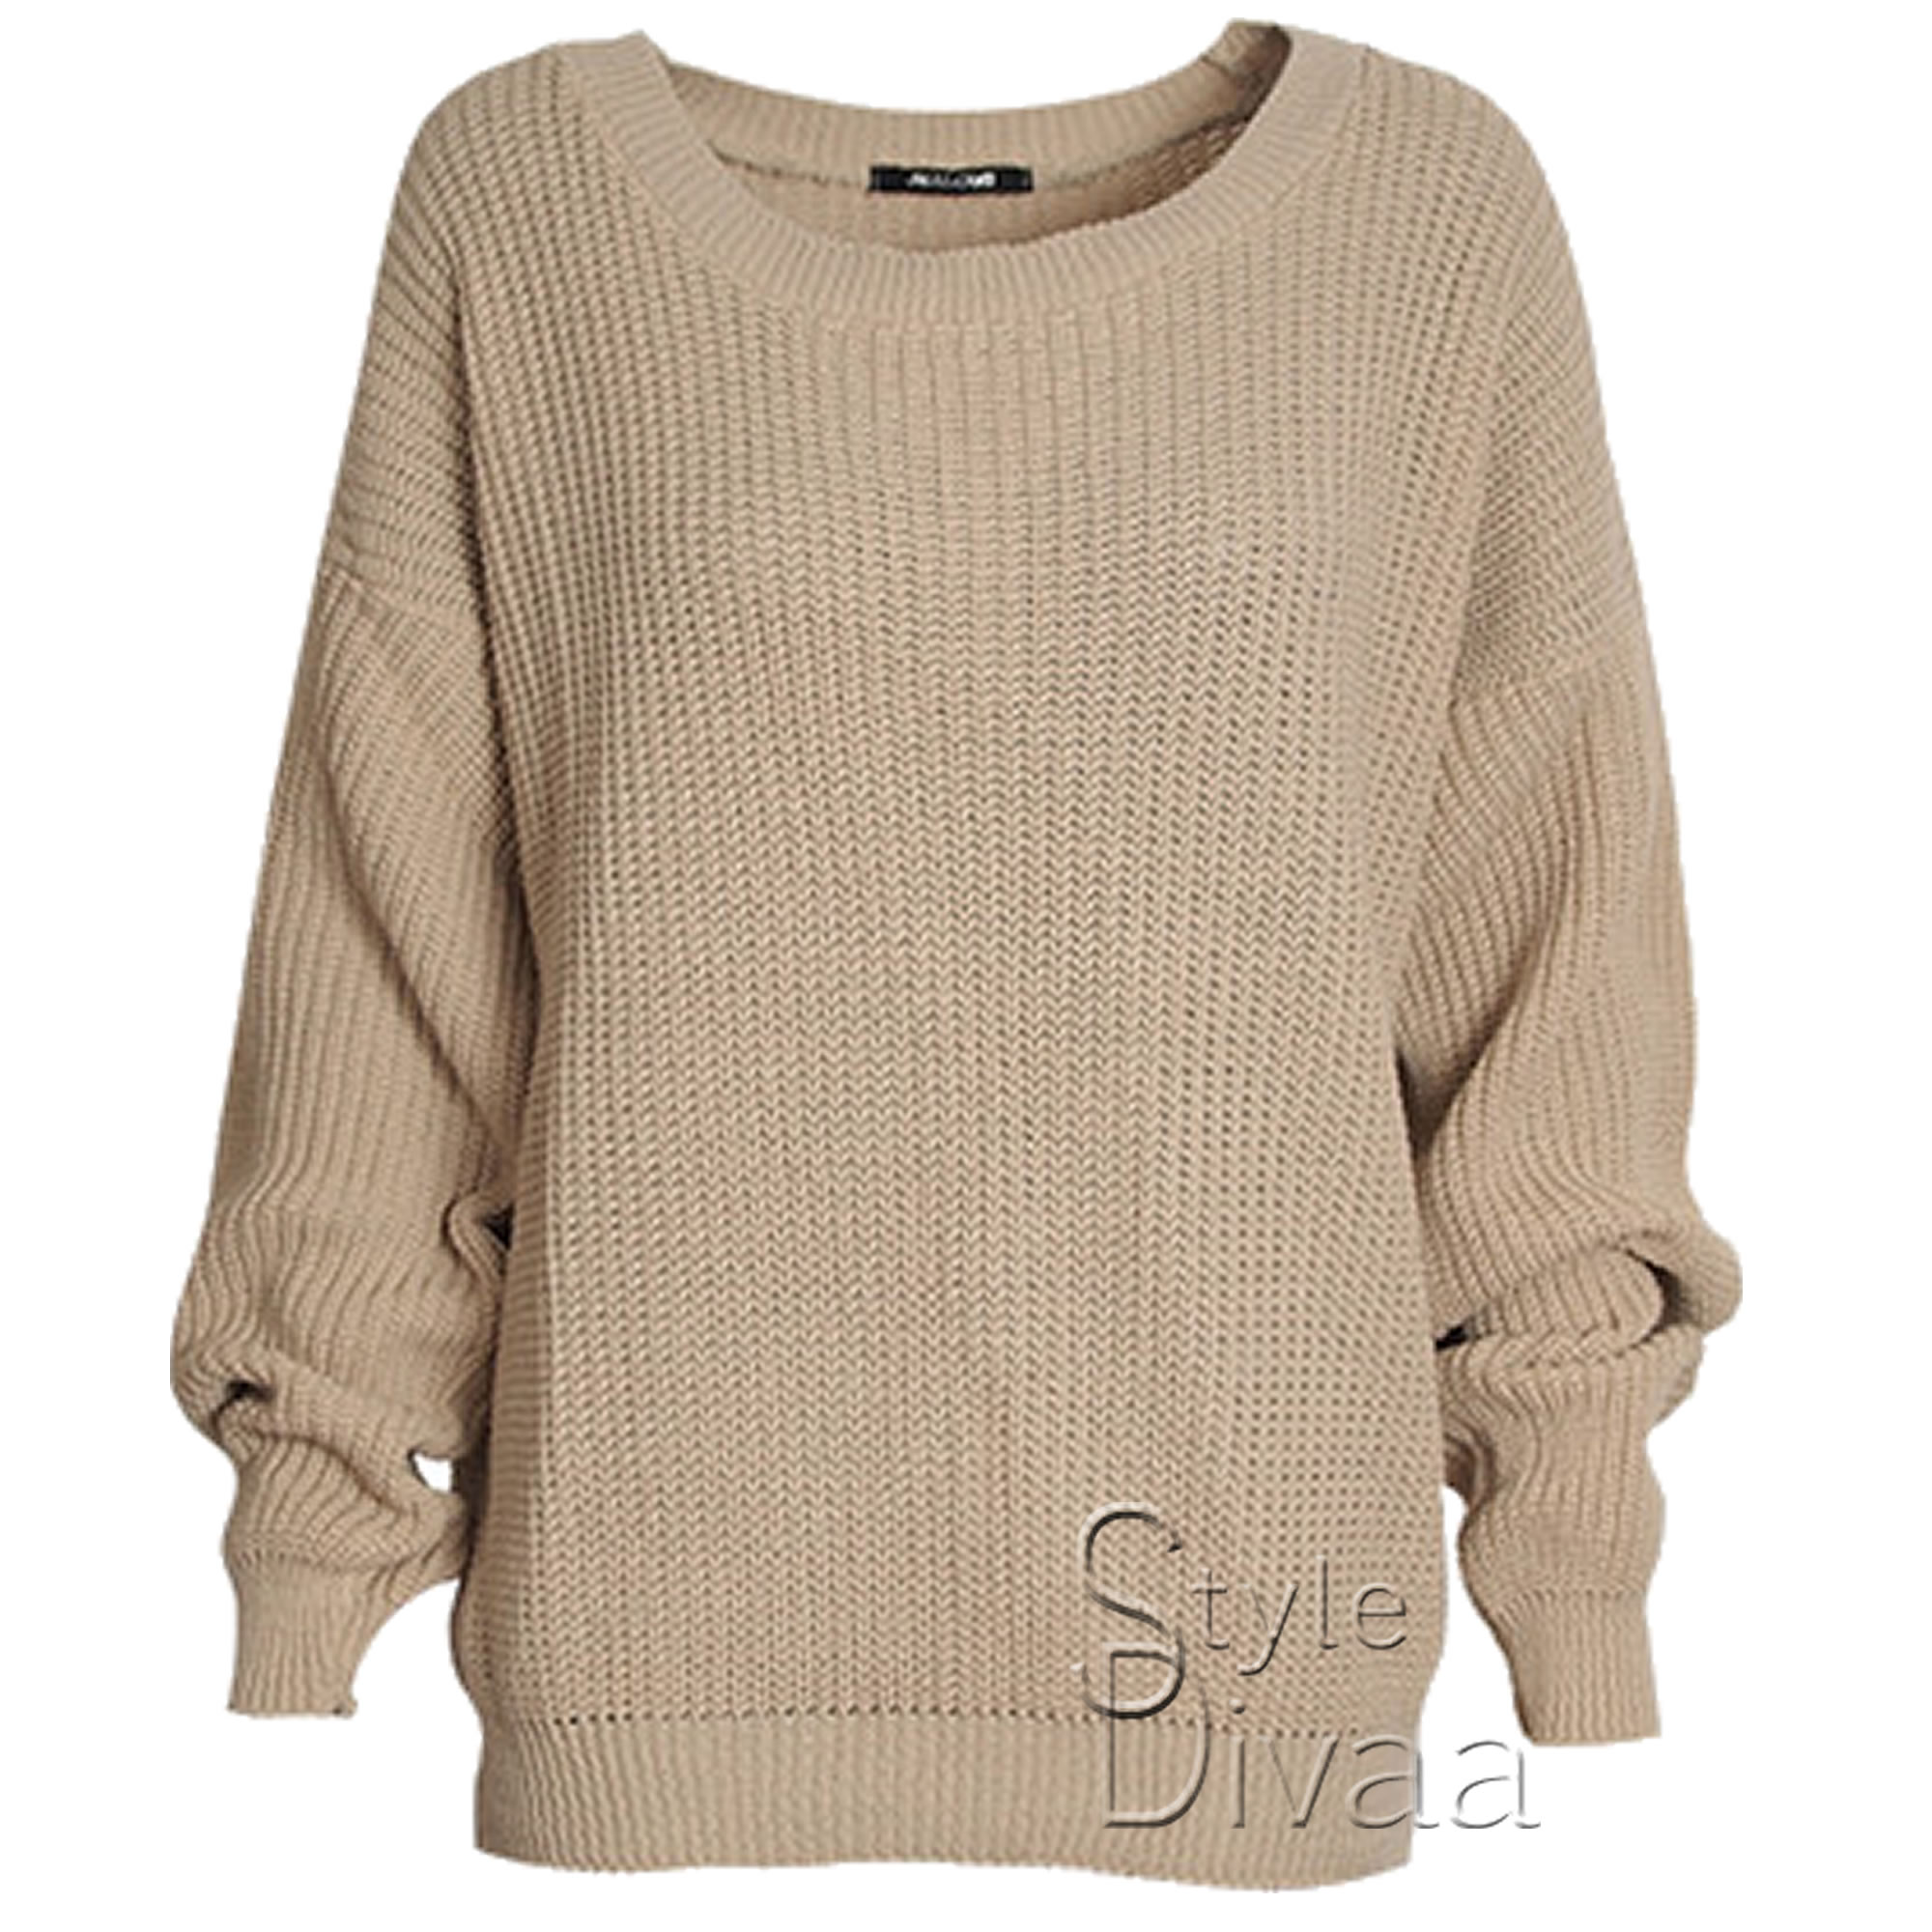 Ladies Oversized Baggy Jumper Knitted Womens Sweater Chunky Knit Top Jumpers   eBay